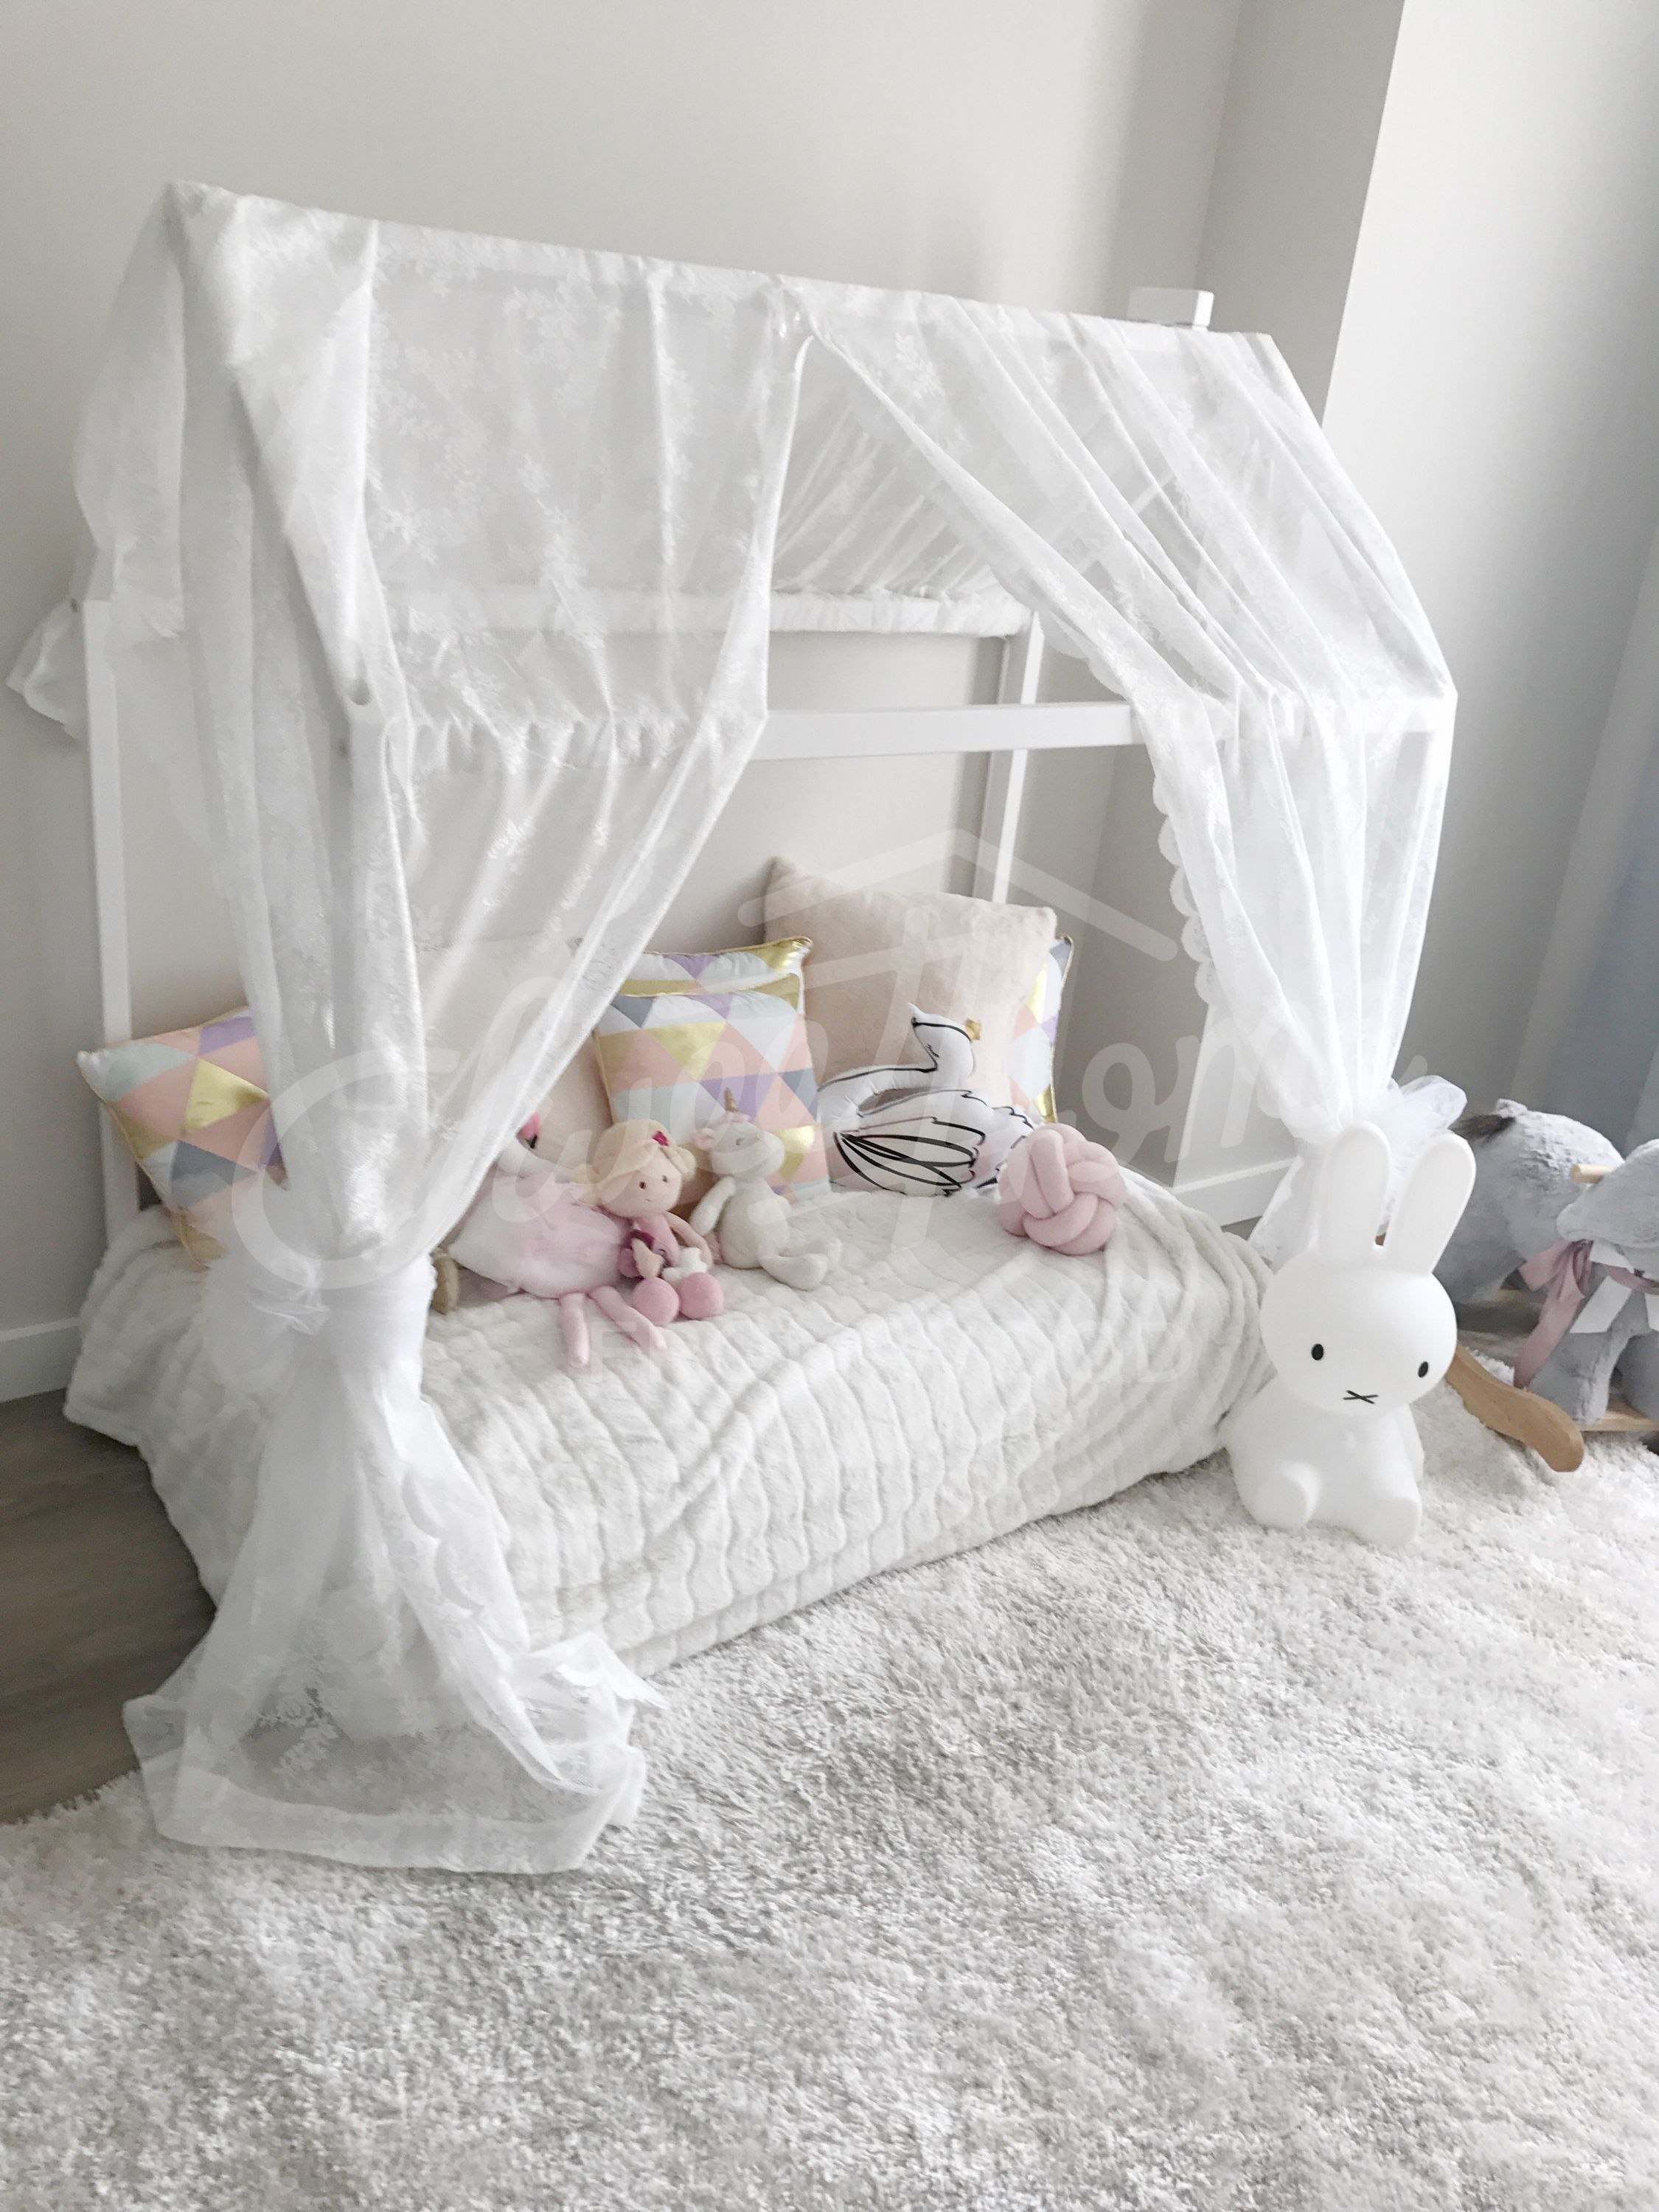 White little princess room toddler bed house shaped bed nursery wood house bed & White little princess room toddler bed house shaped bed nursery ...